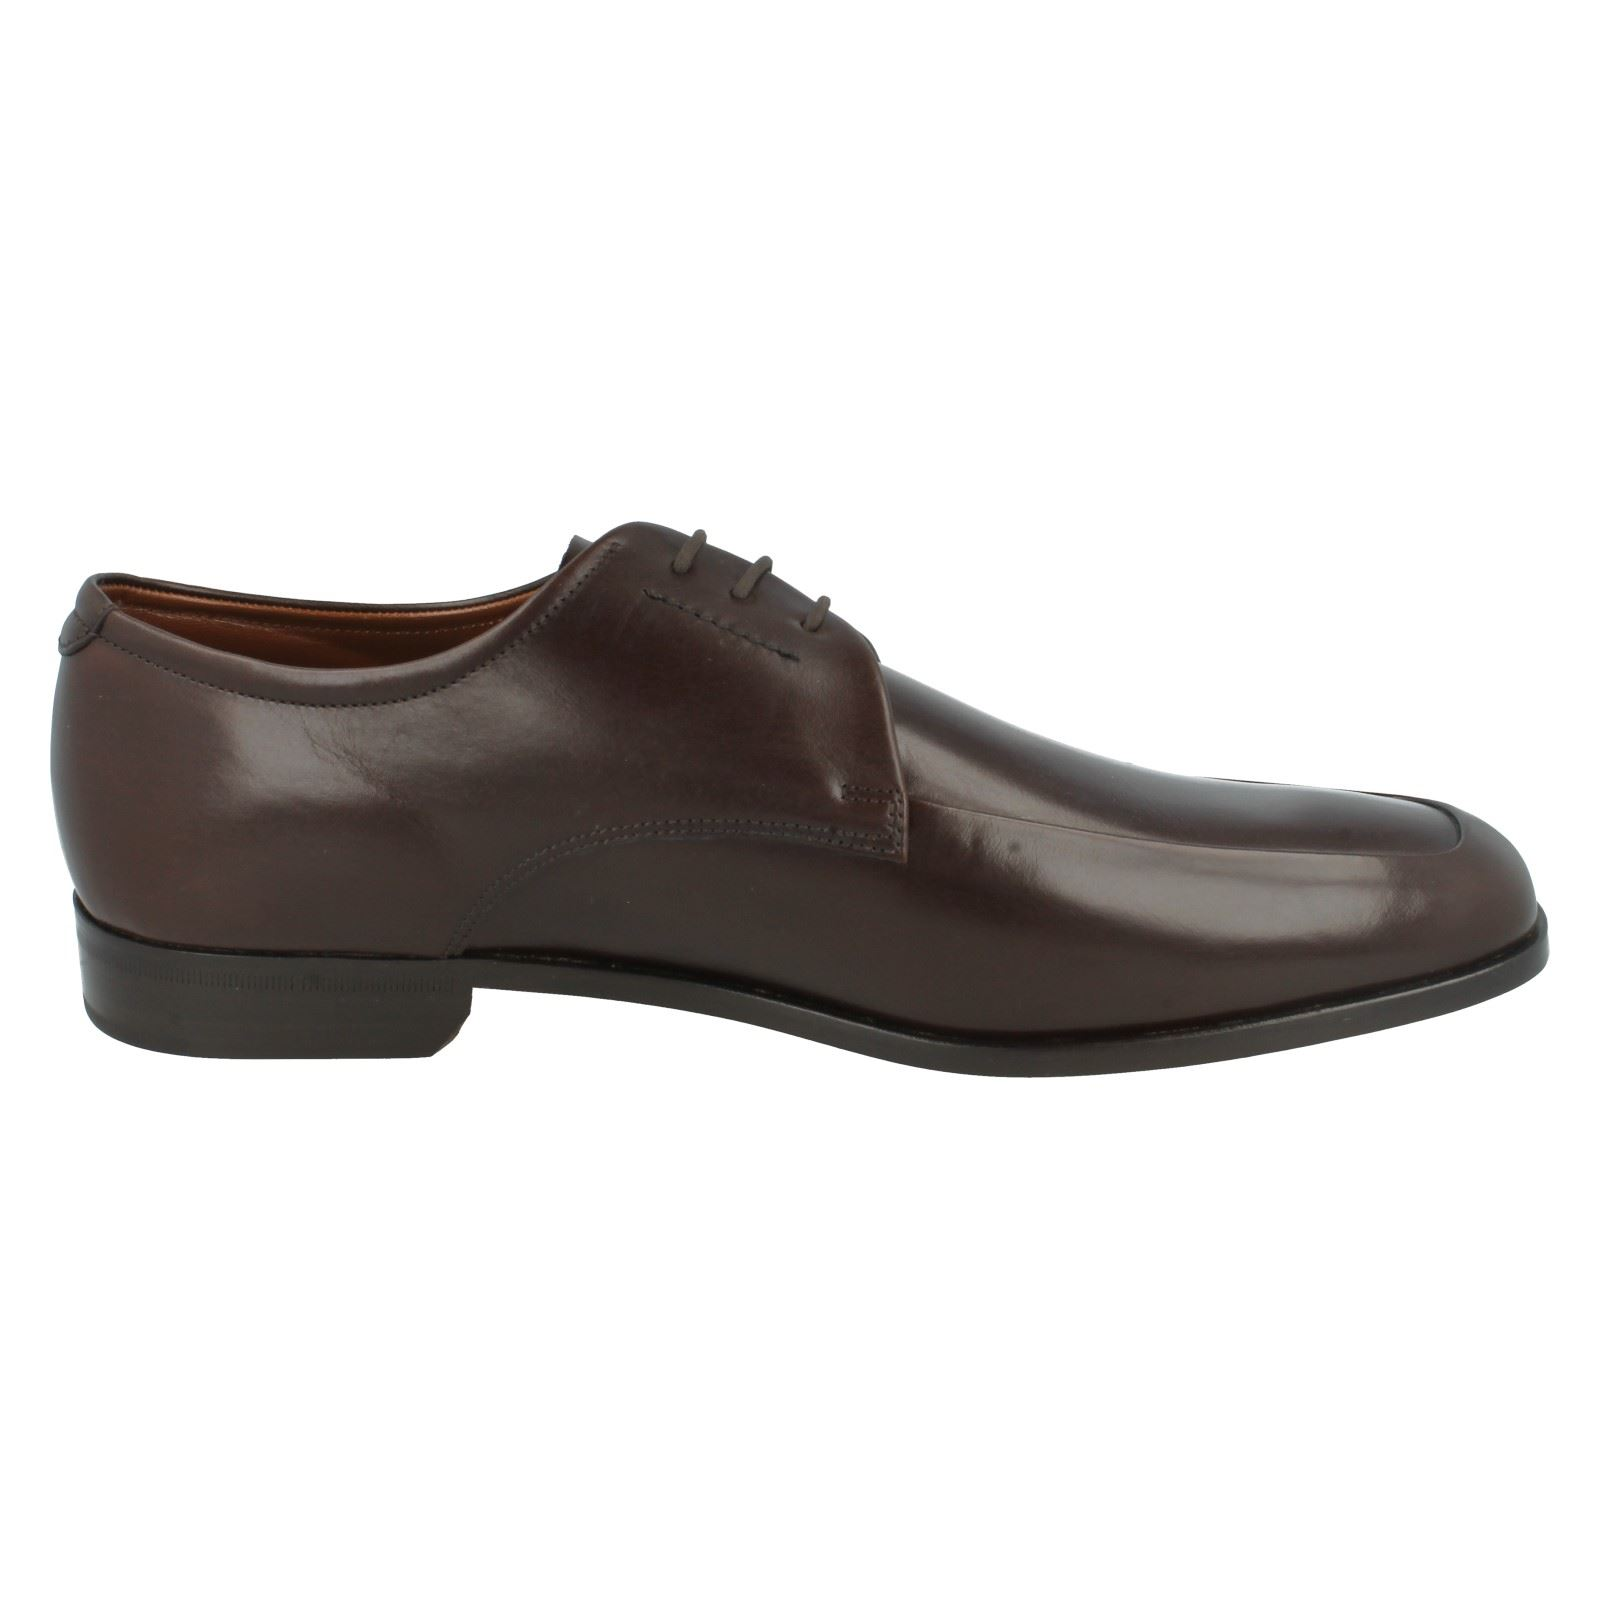 Mens Grenson Formal Leather Shoes Reims 7787 Fitting G